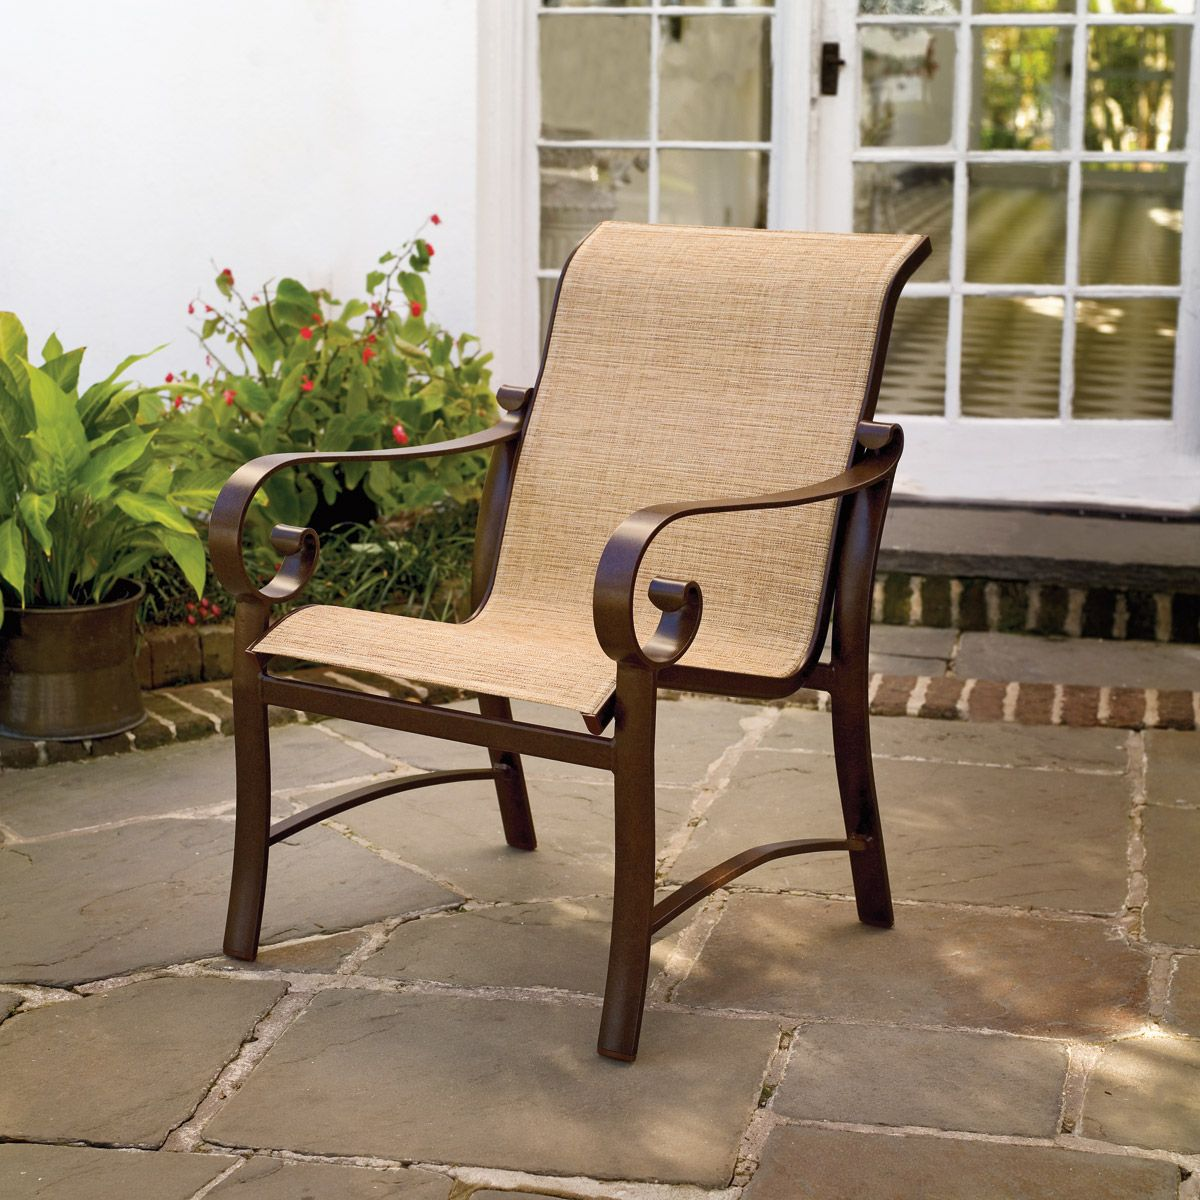 How To Paint Outdoor Sling Chairs I Painting Patio Furniture